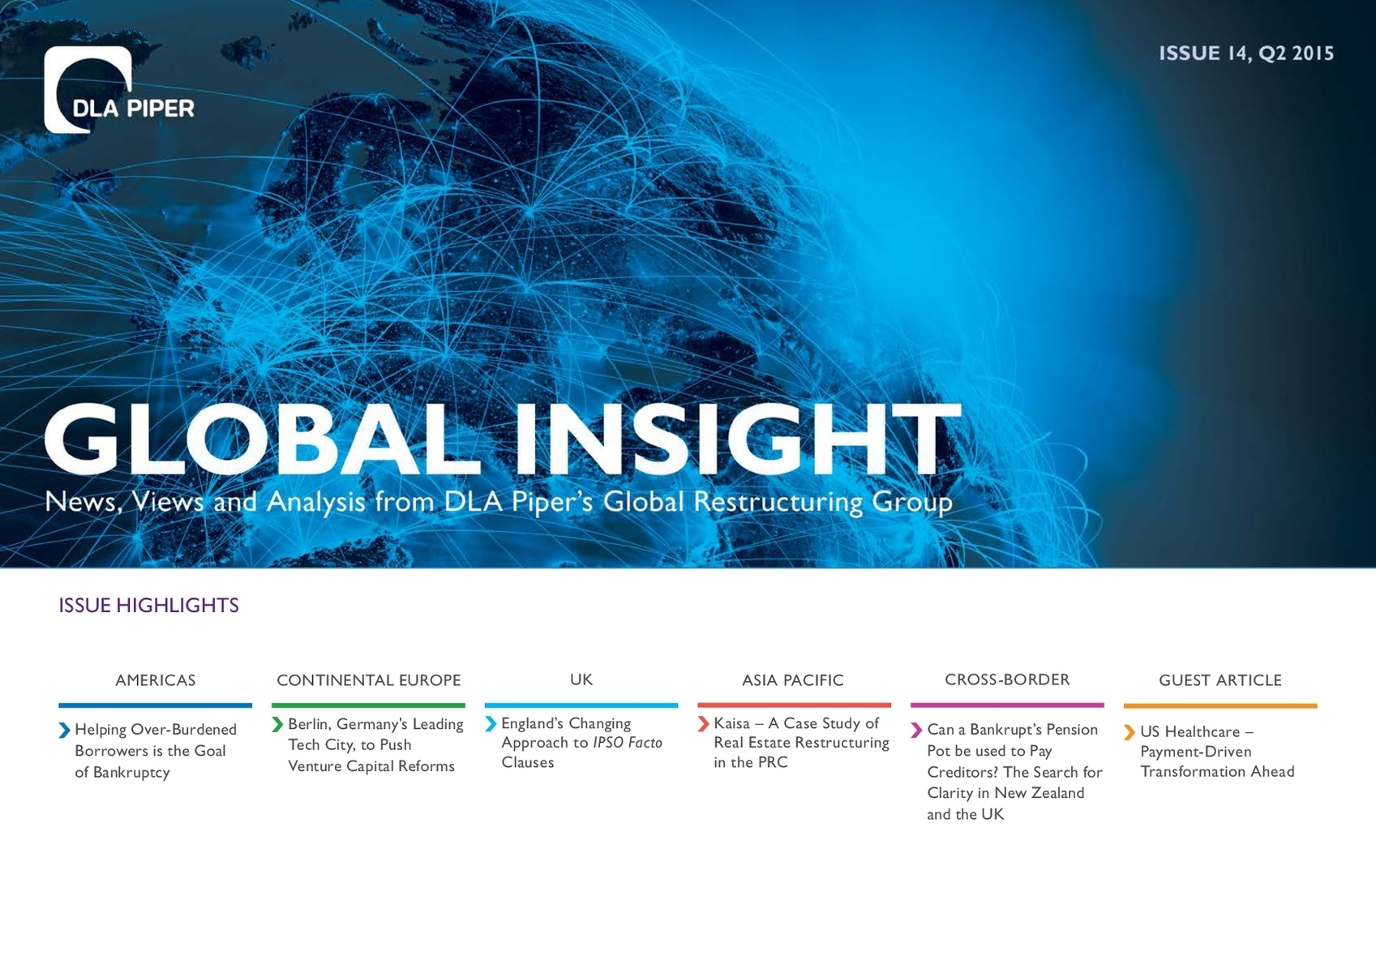 Global Insight Issue 14 - DLA Piper Restructuring e-Newsletter